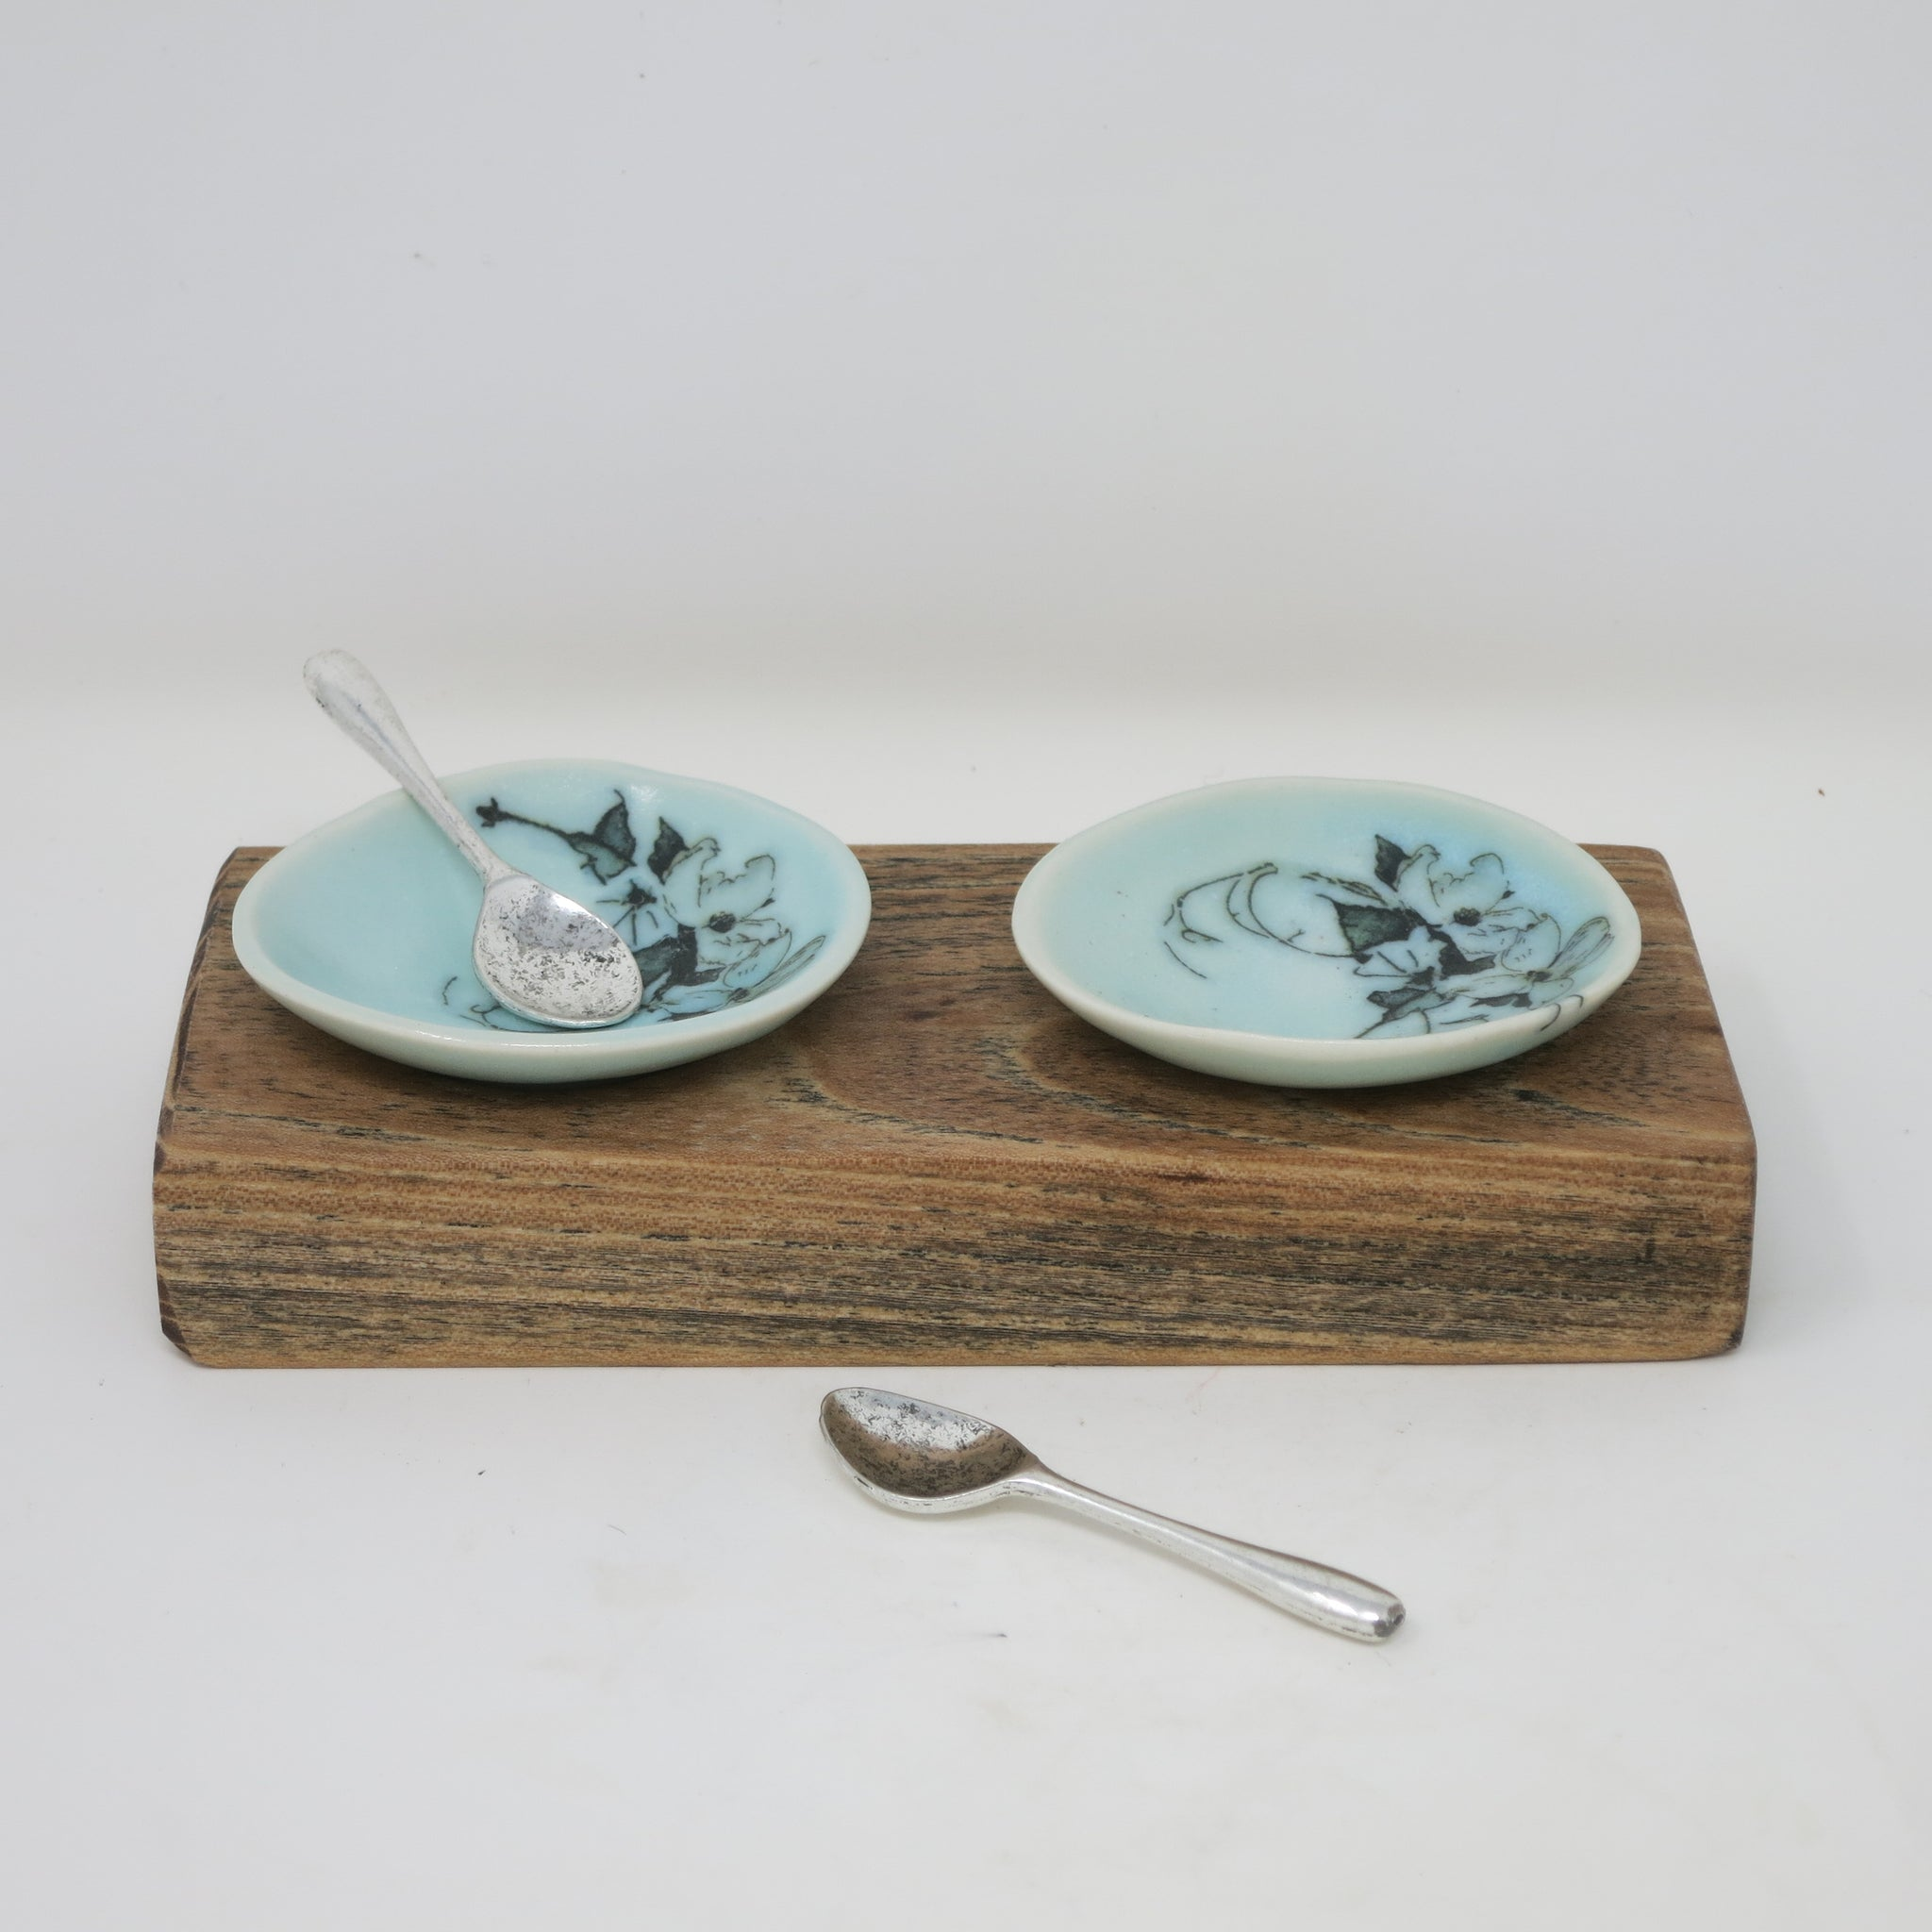 Salt Dishes (Set of 2 with Tray)